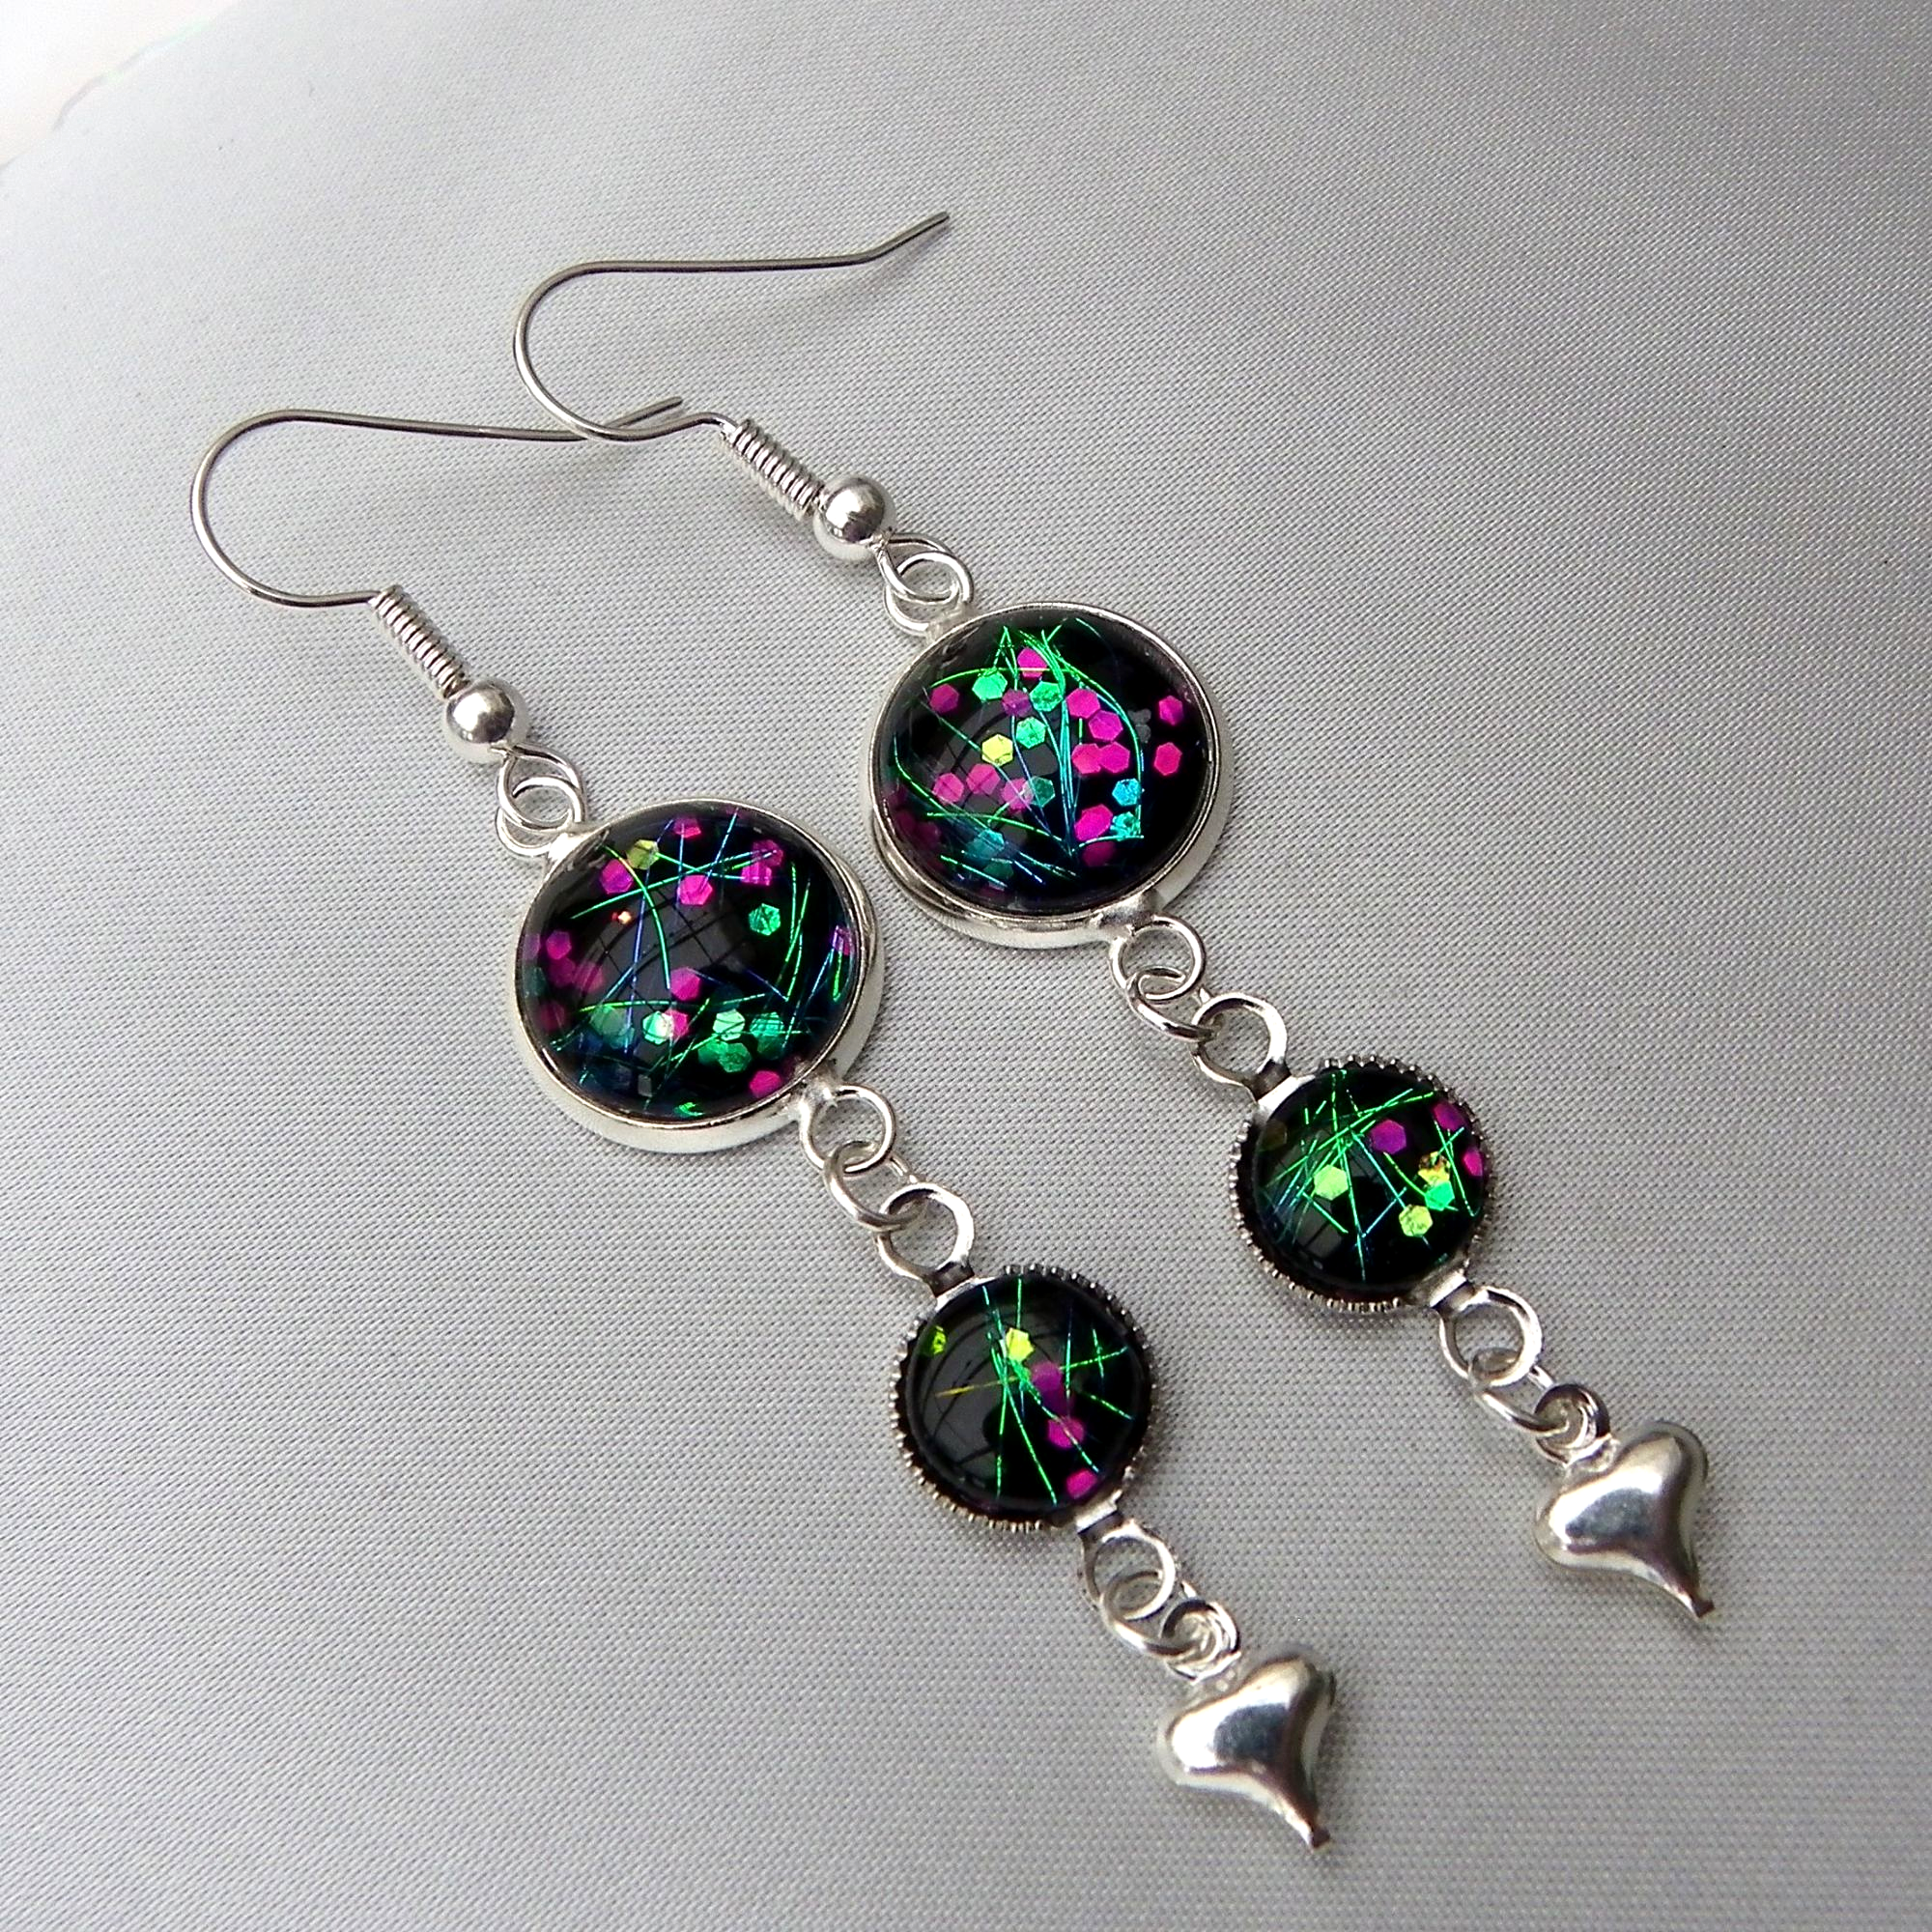 sparkly black dangly earrings